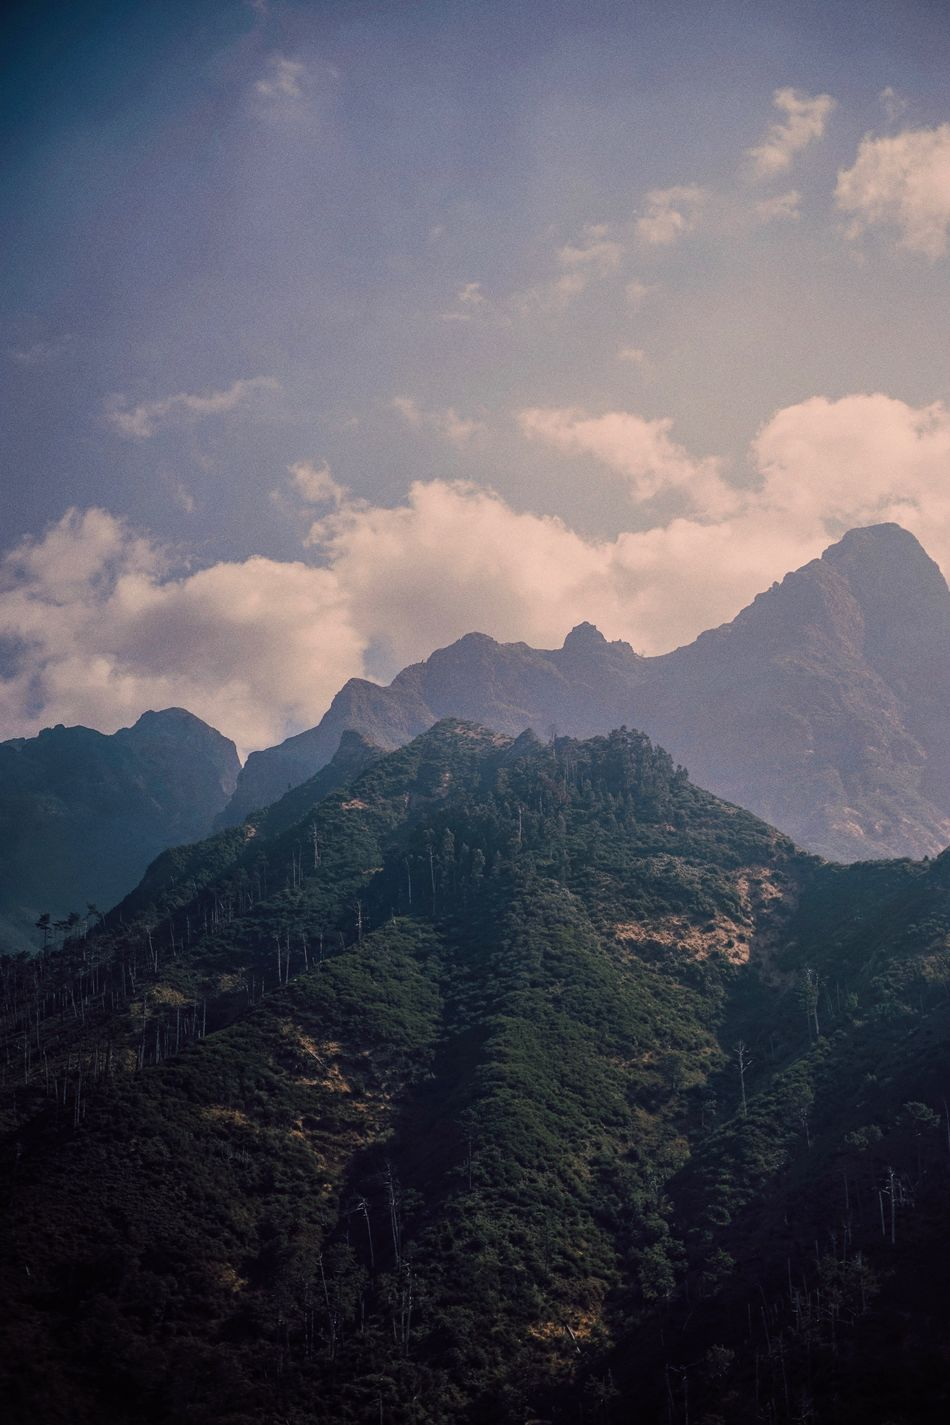 Views of Madeira. Mountain Mountain Range Scenics Sky Tranquil Scene Nature Majestic Outdoors The Week Of Eyeem Adventure Landscapes Portugal Madeira Cloud Beauty In Nature Road Tourist Valley Solitude Cloudy Nature Vacations TakeoverContrast